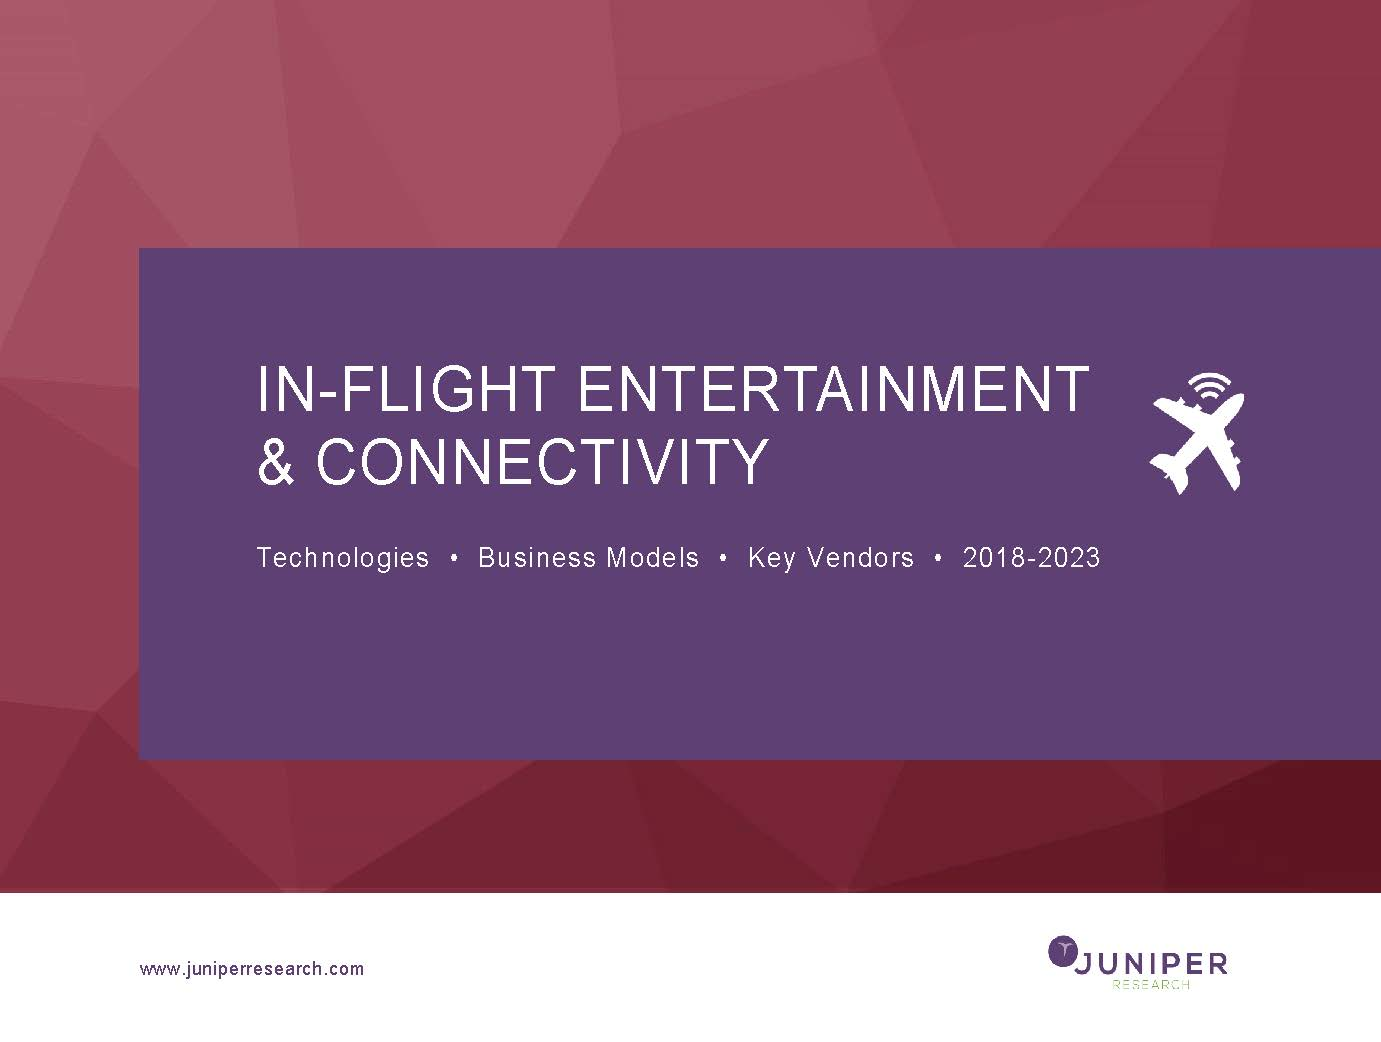 In-Flight Entertainment & Connectivity